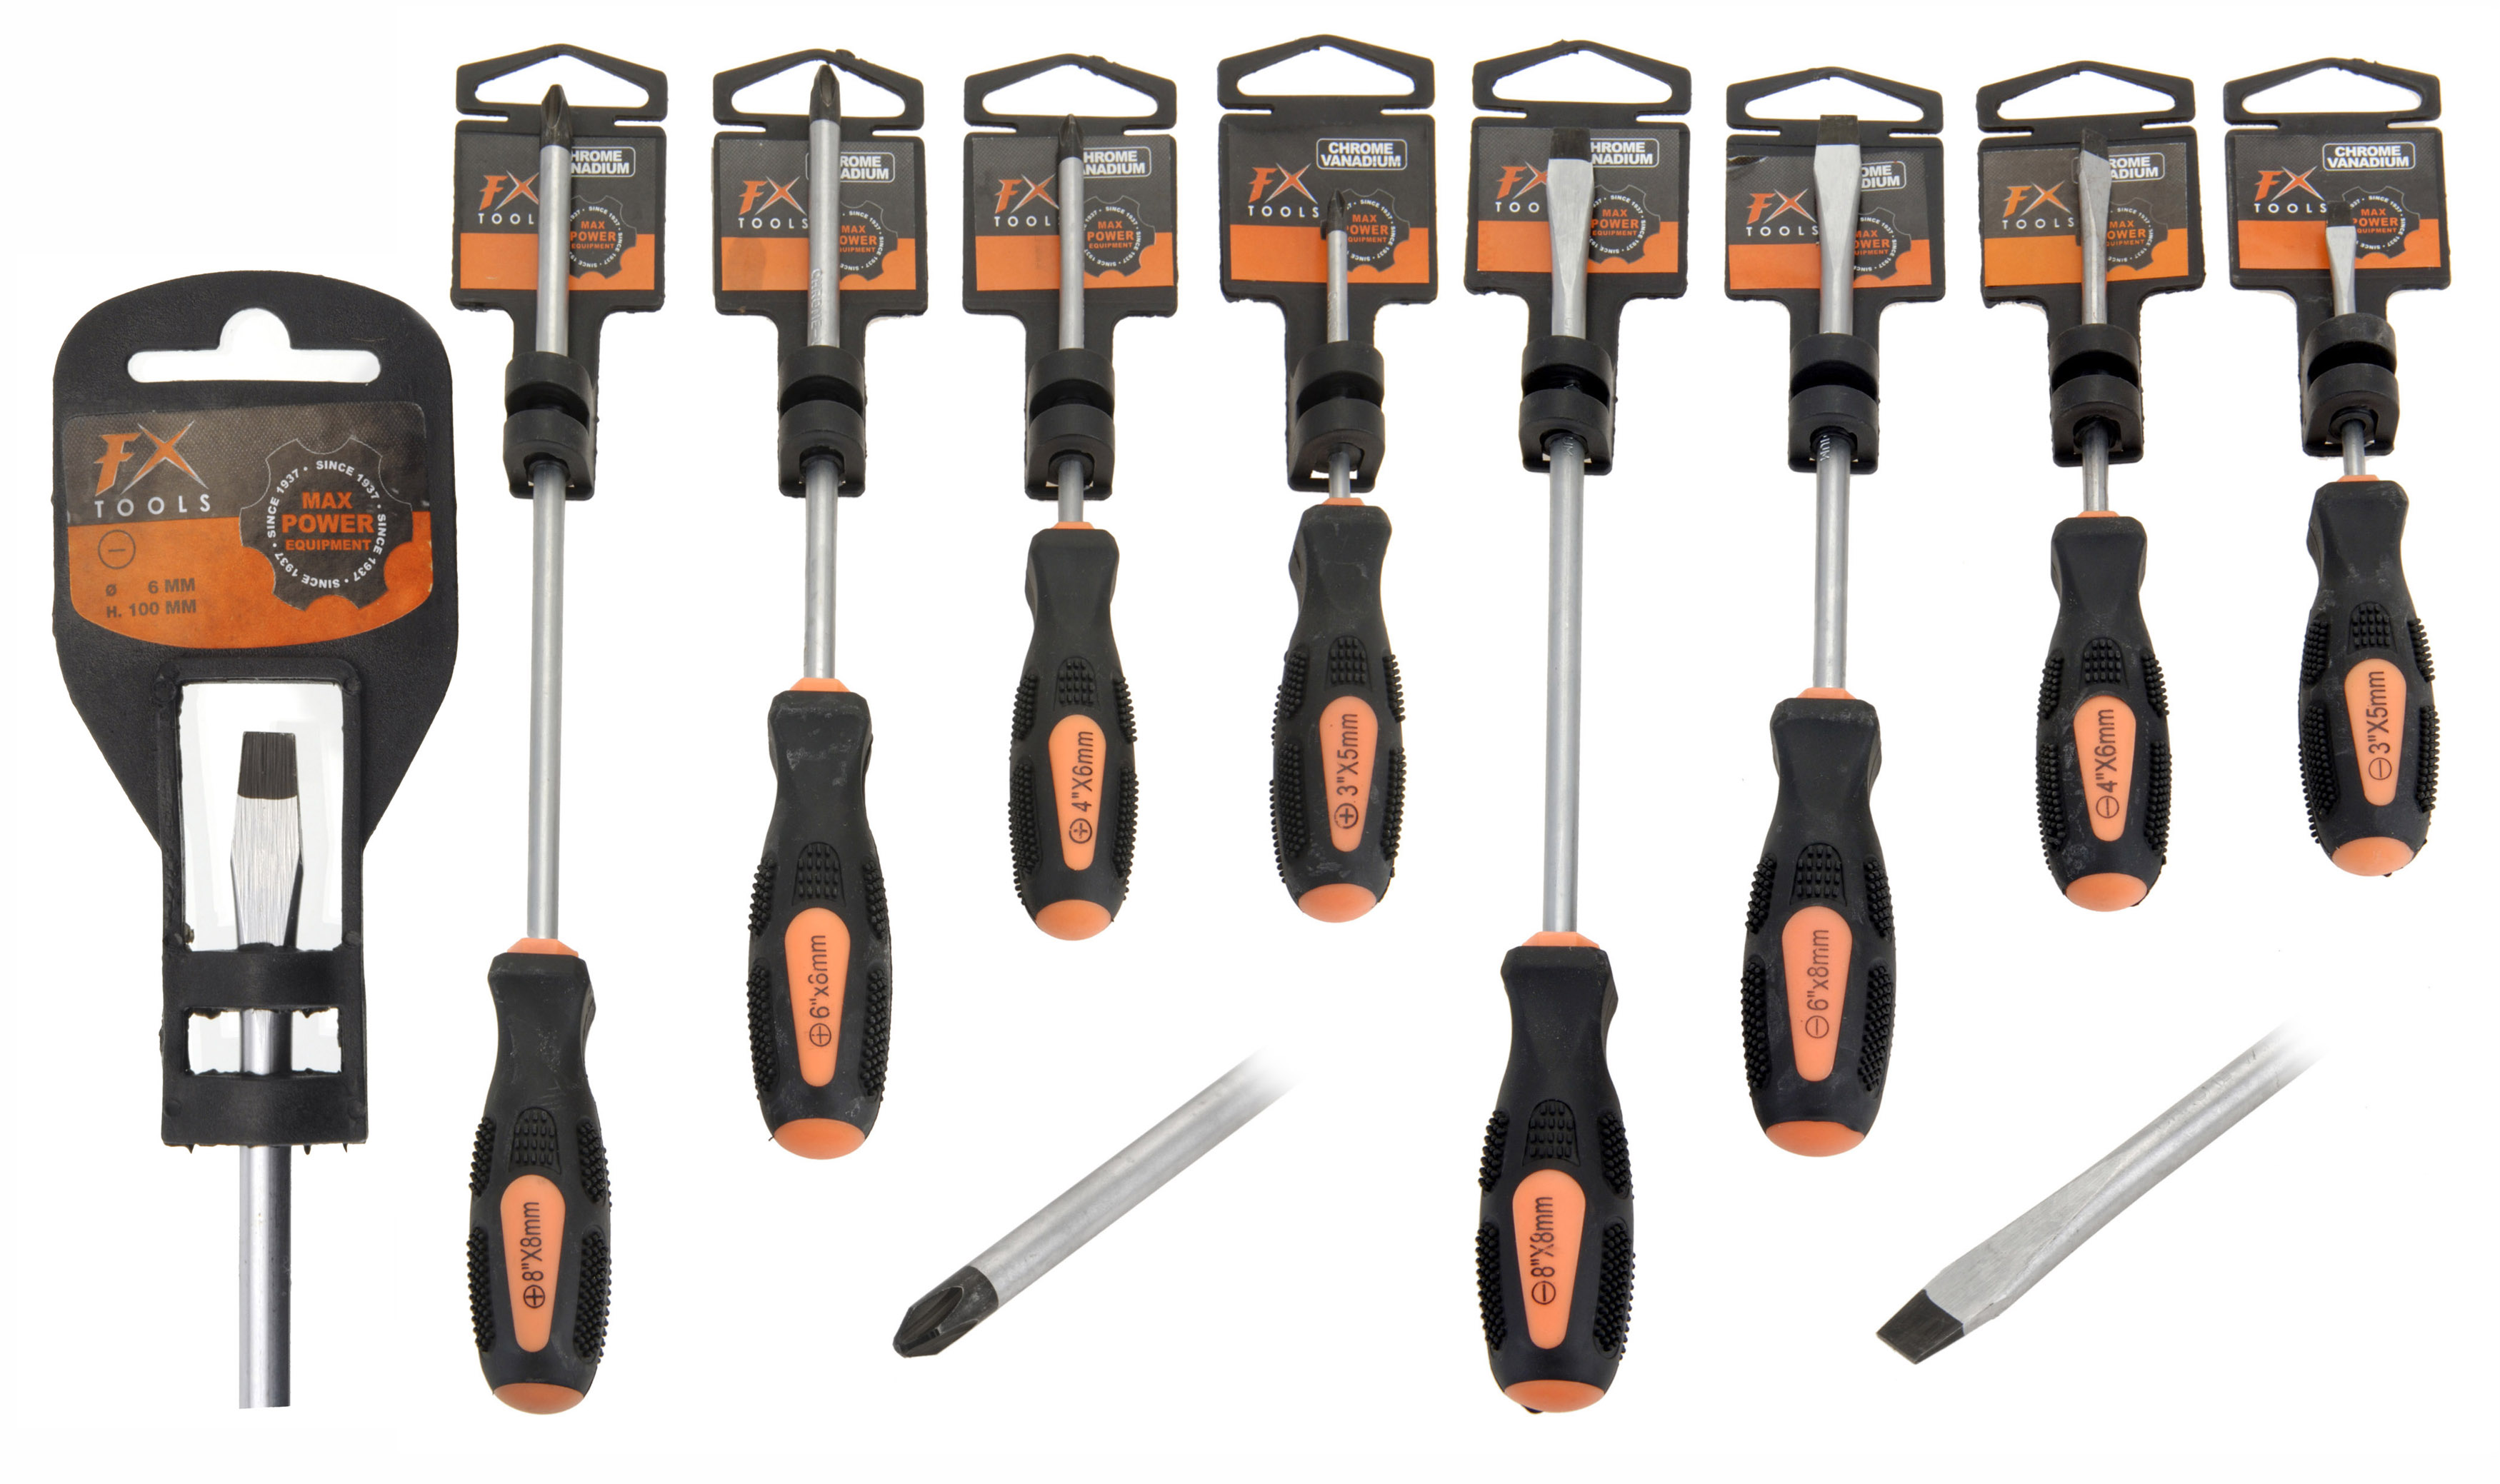 FX SCREW DRIVER 8ASS SIZES